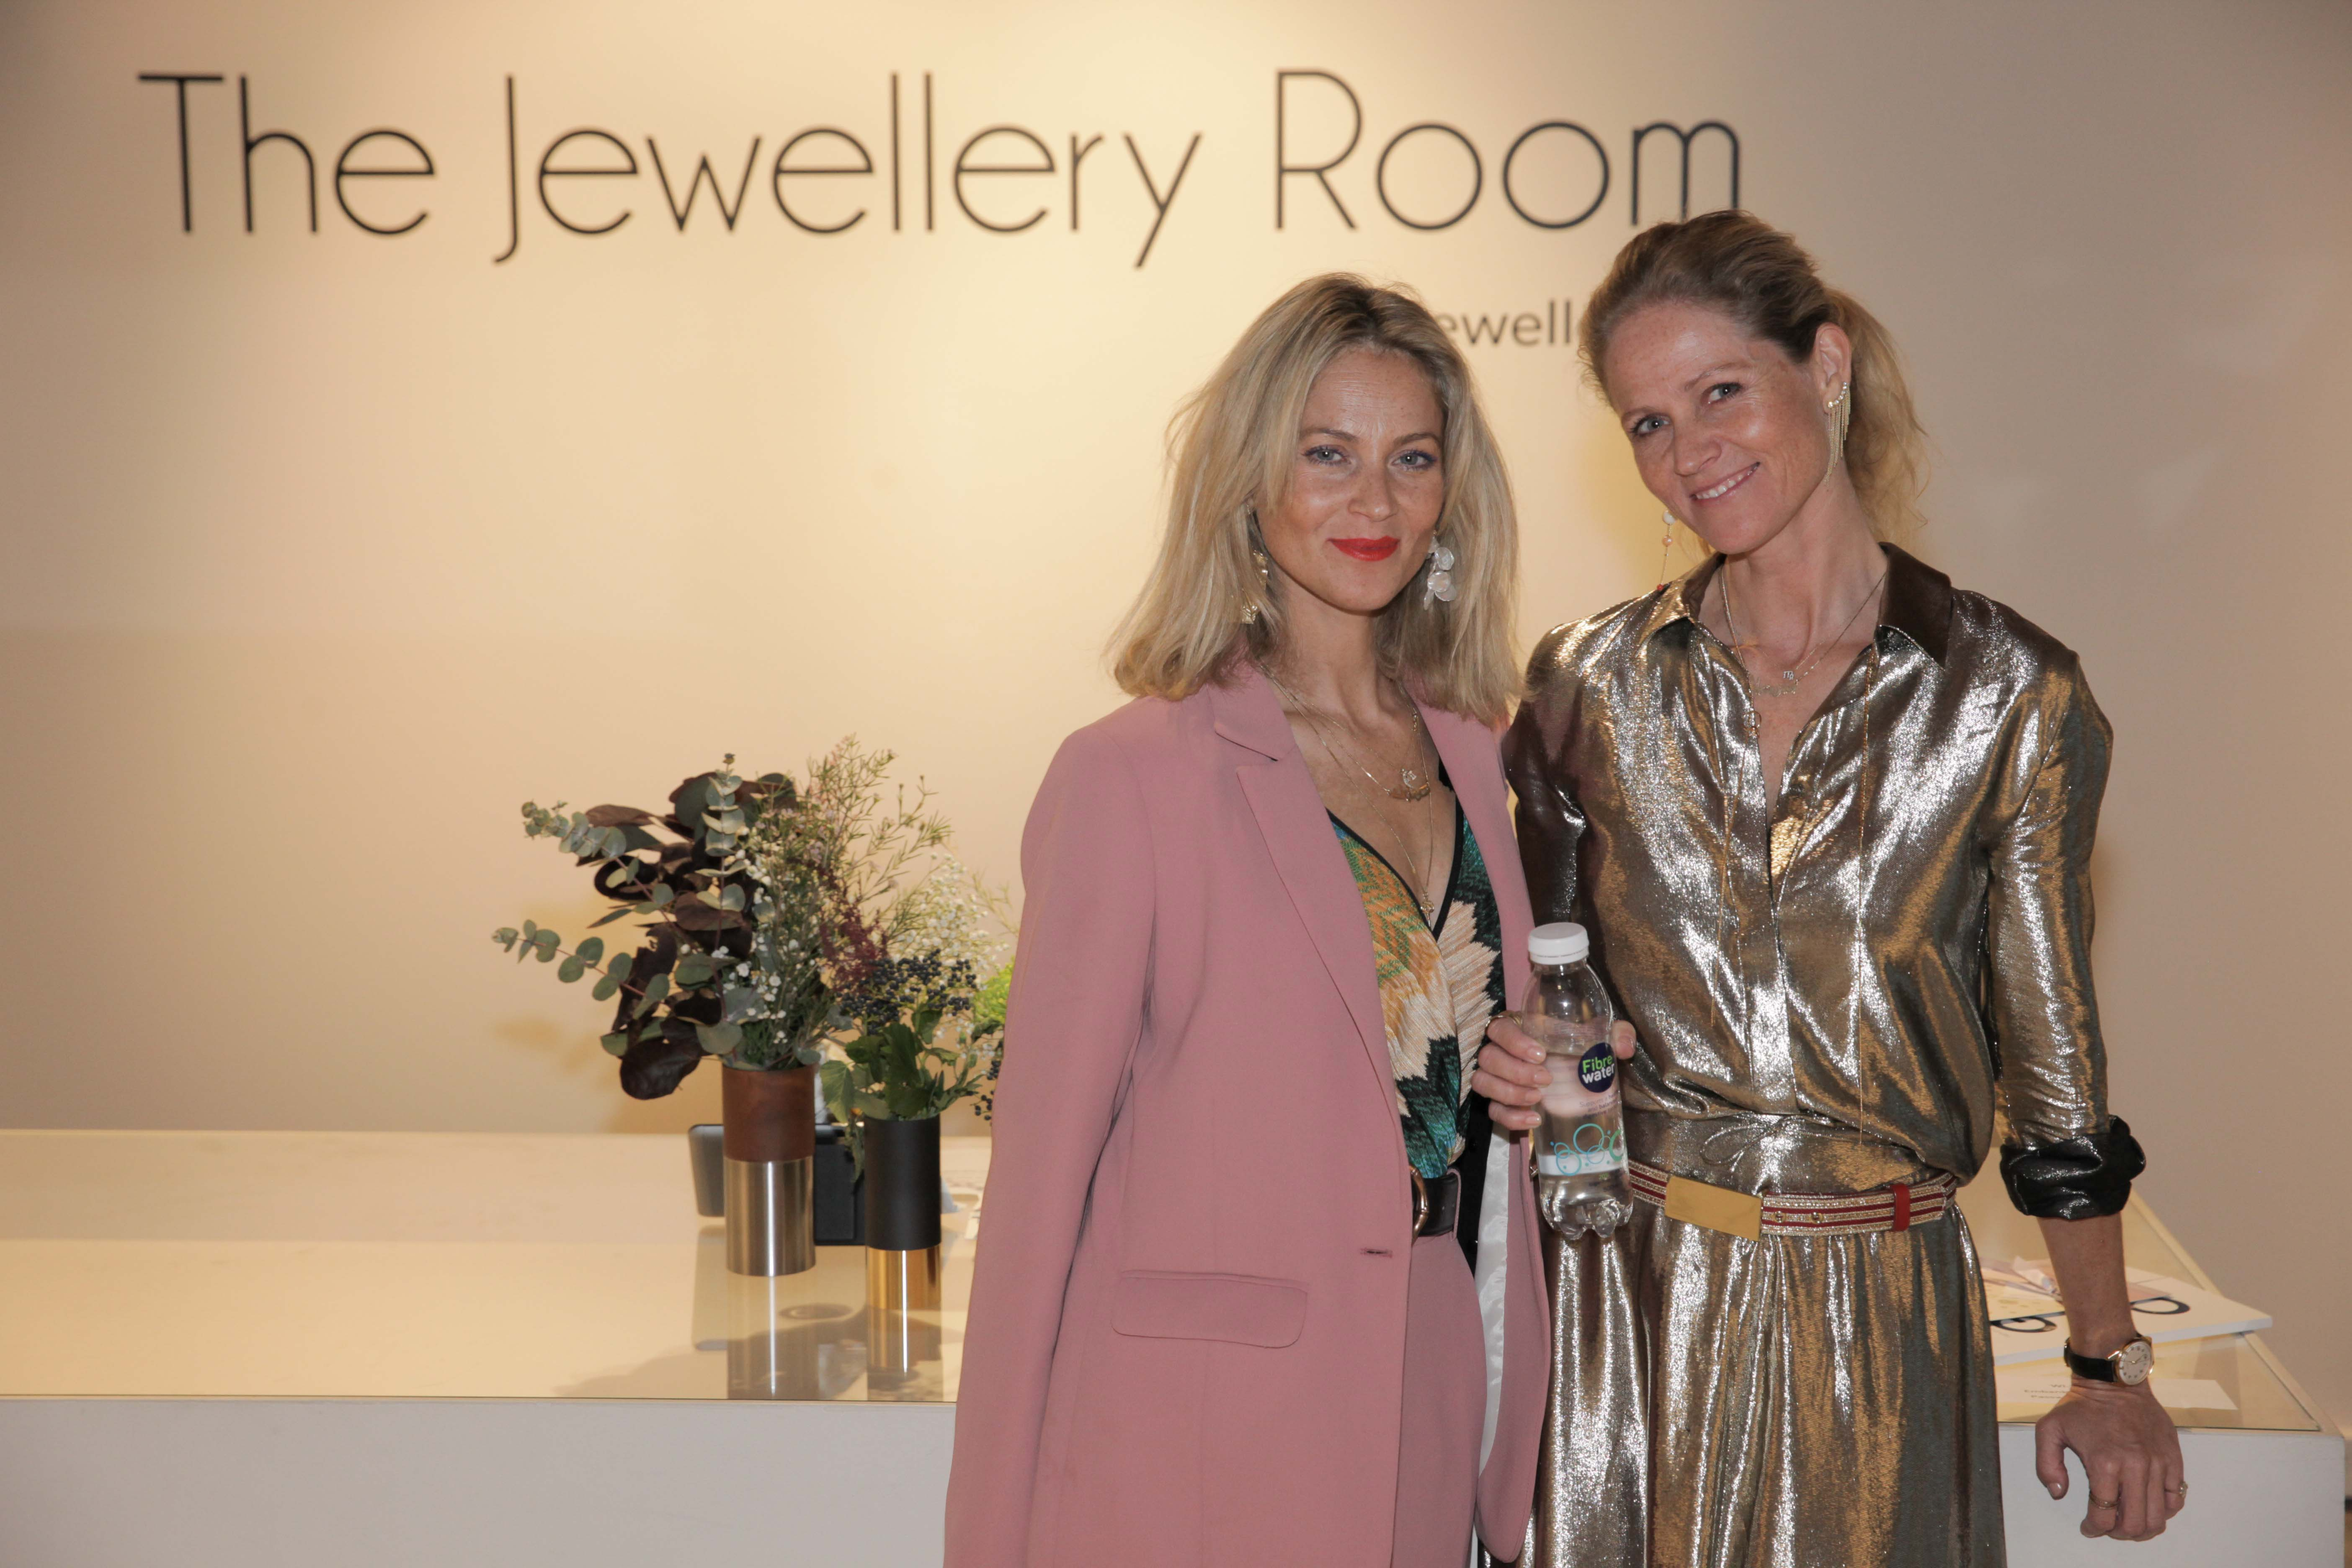 From The jewellery Room Exhibition in Lodnond Somerset House, The Embankment Galleries